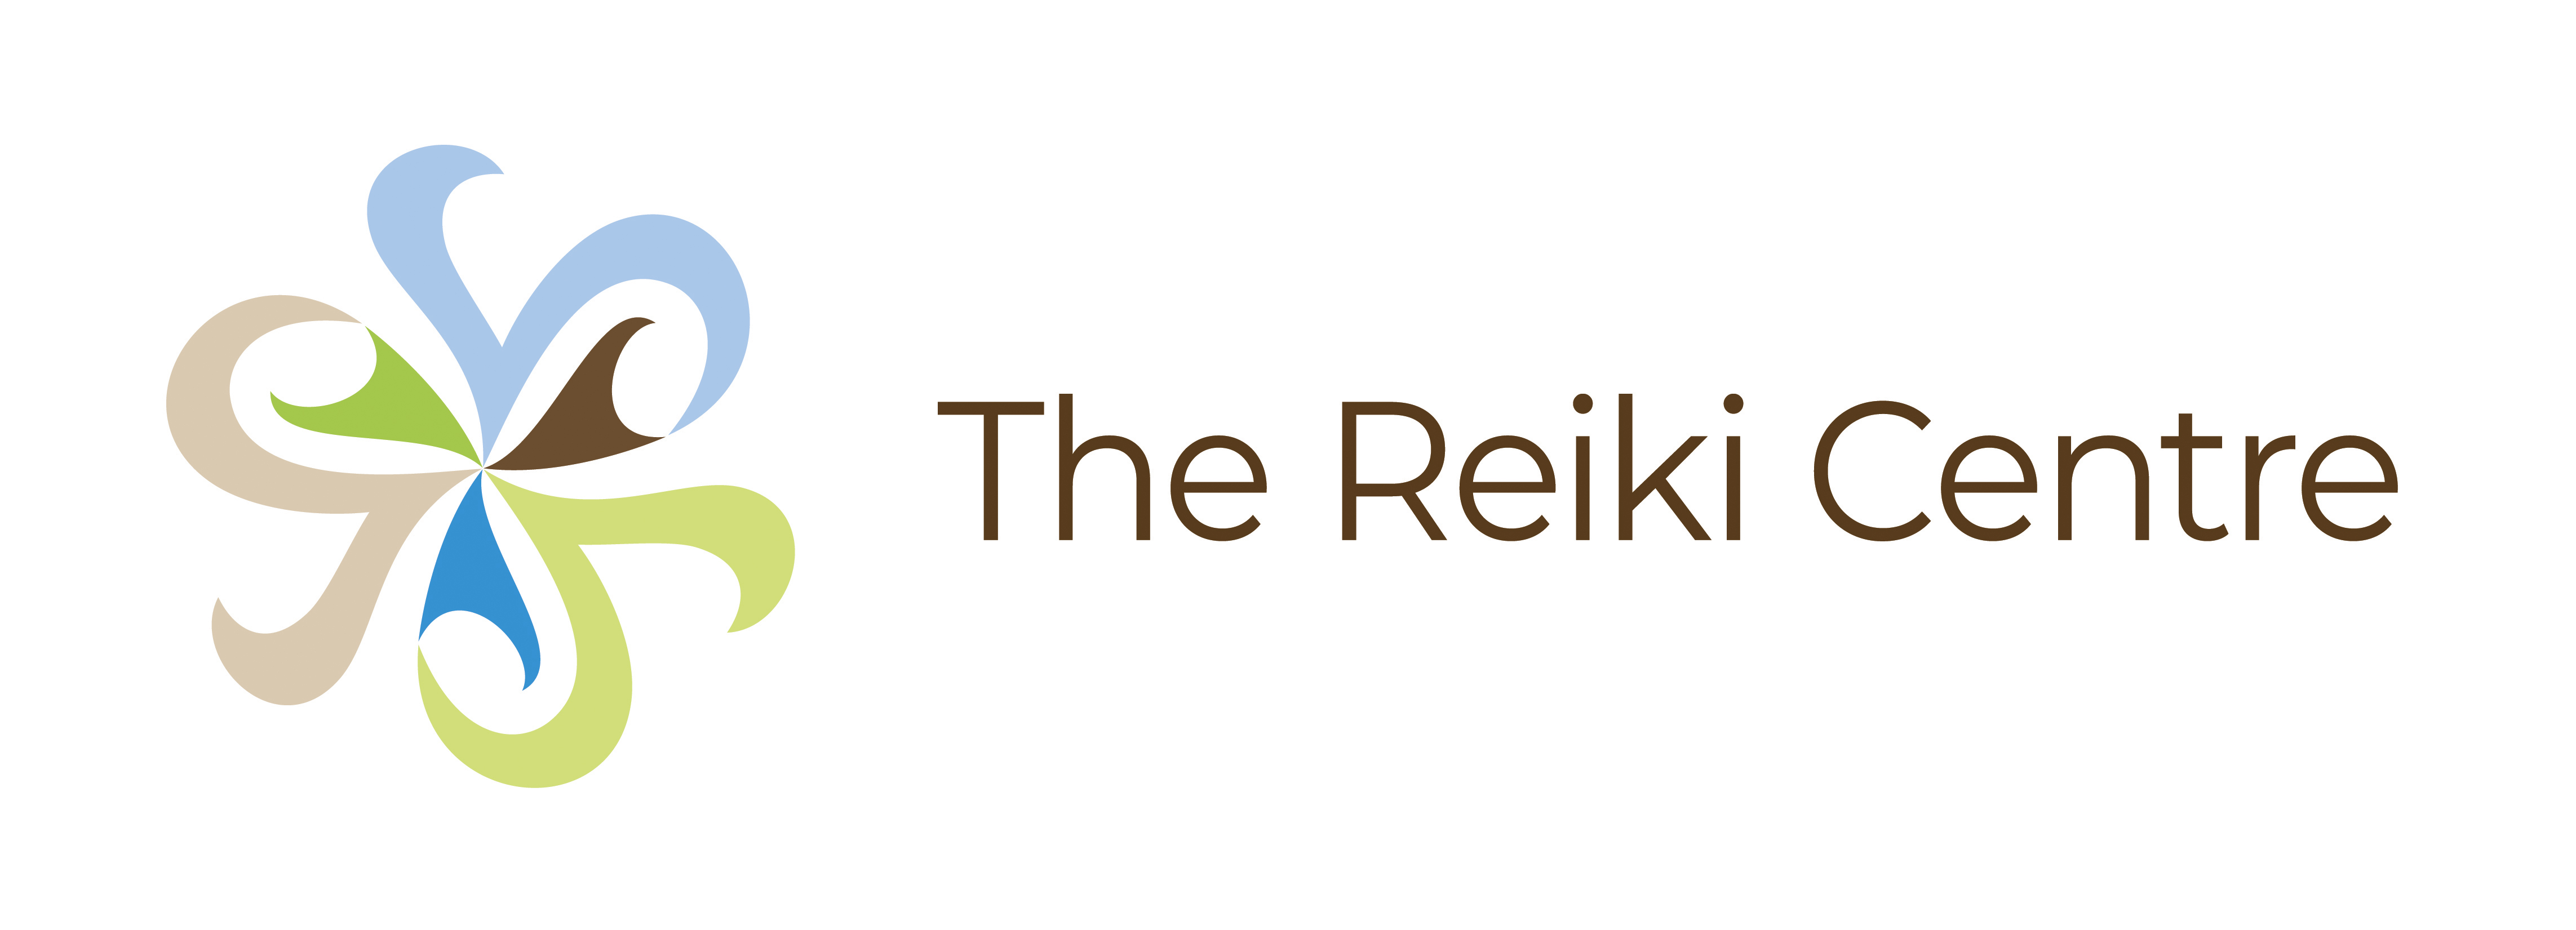 Reiki survey finds significant benefits to wellbeing during COVID-19